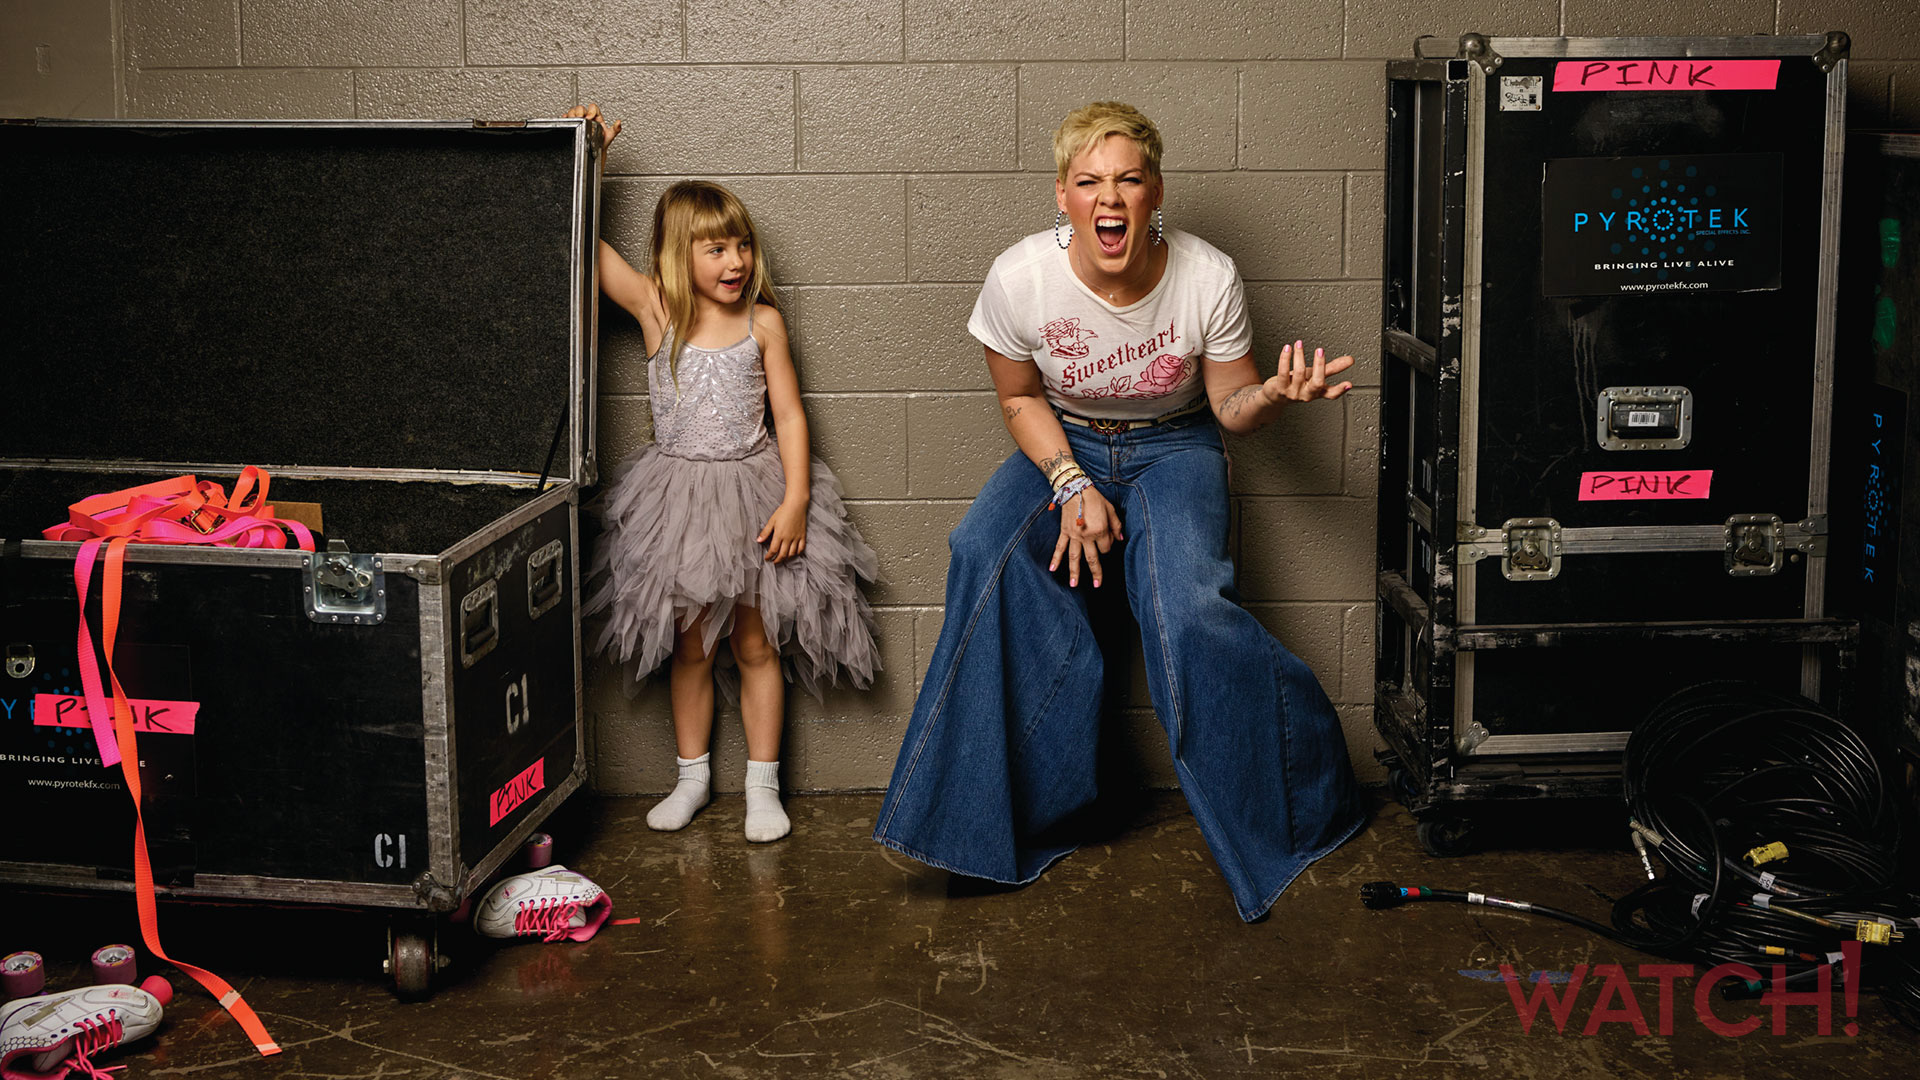 P!nk and her very special helper are ready to rock